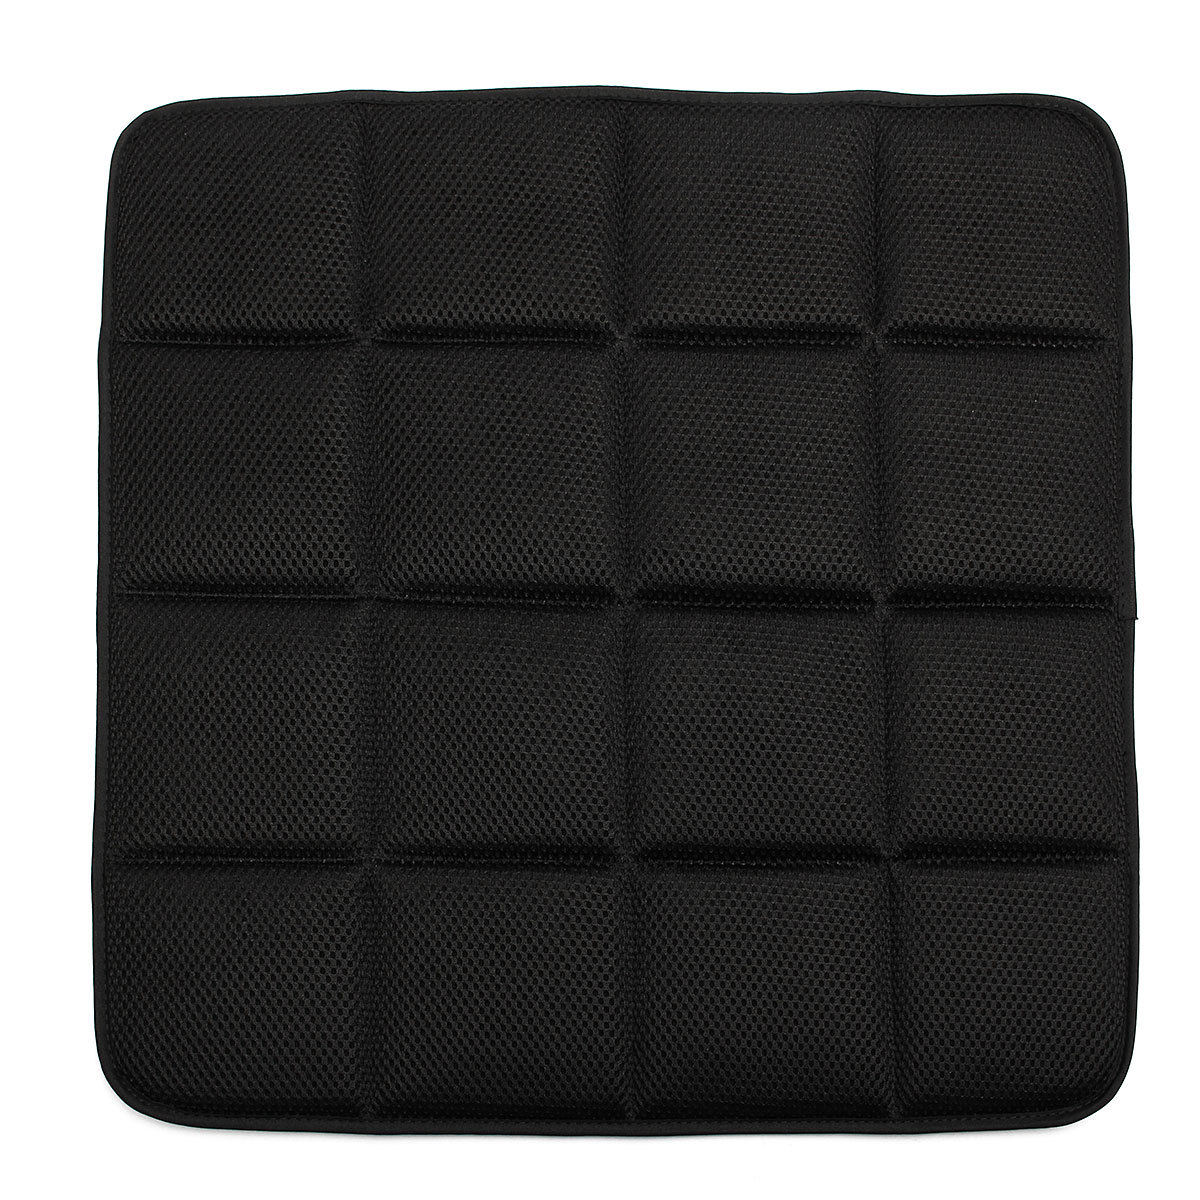 office chair seat covers black metal stacking chairs outdoor bamboo charcoal breathable cushion cover pad mat for